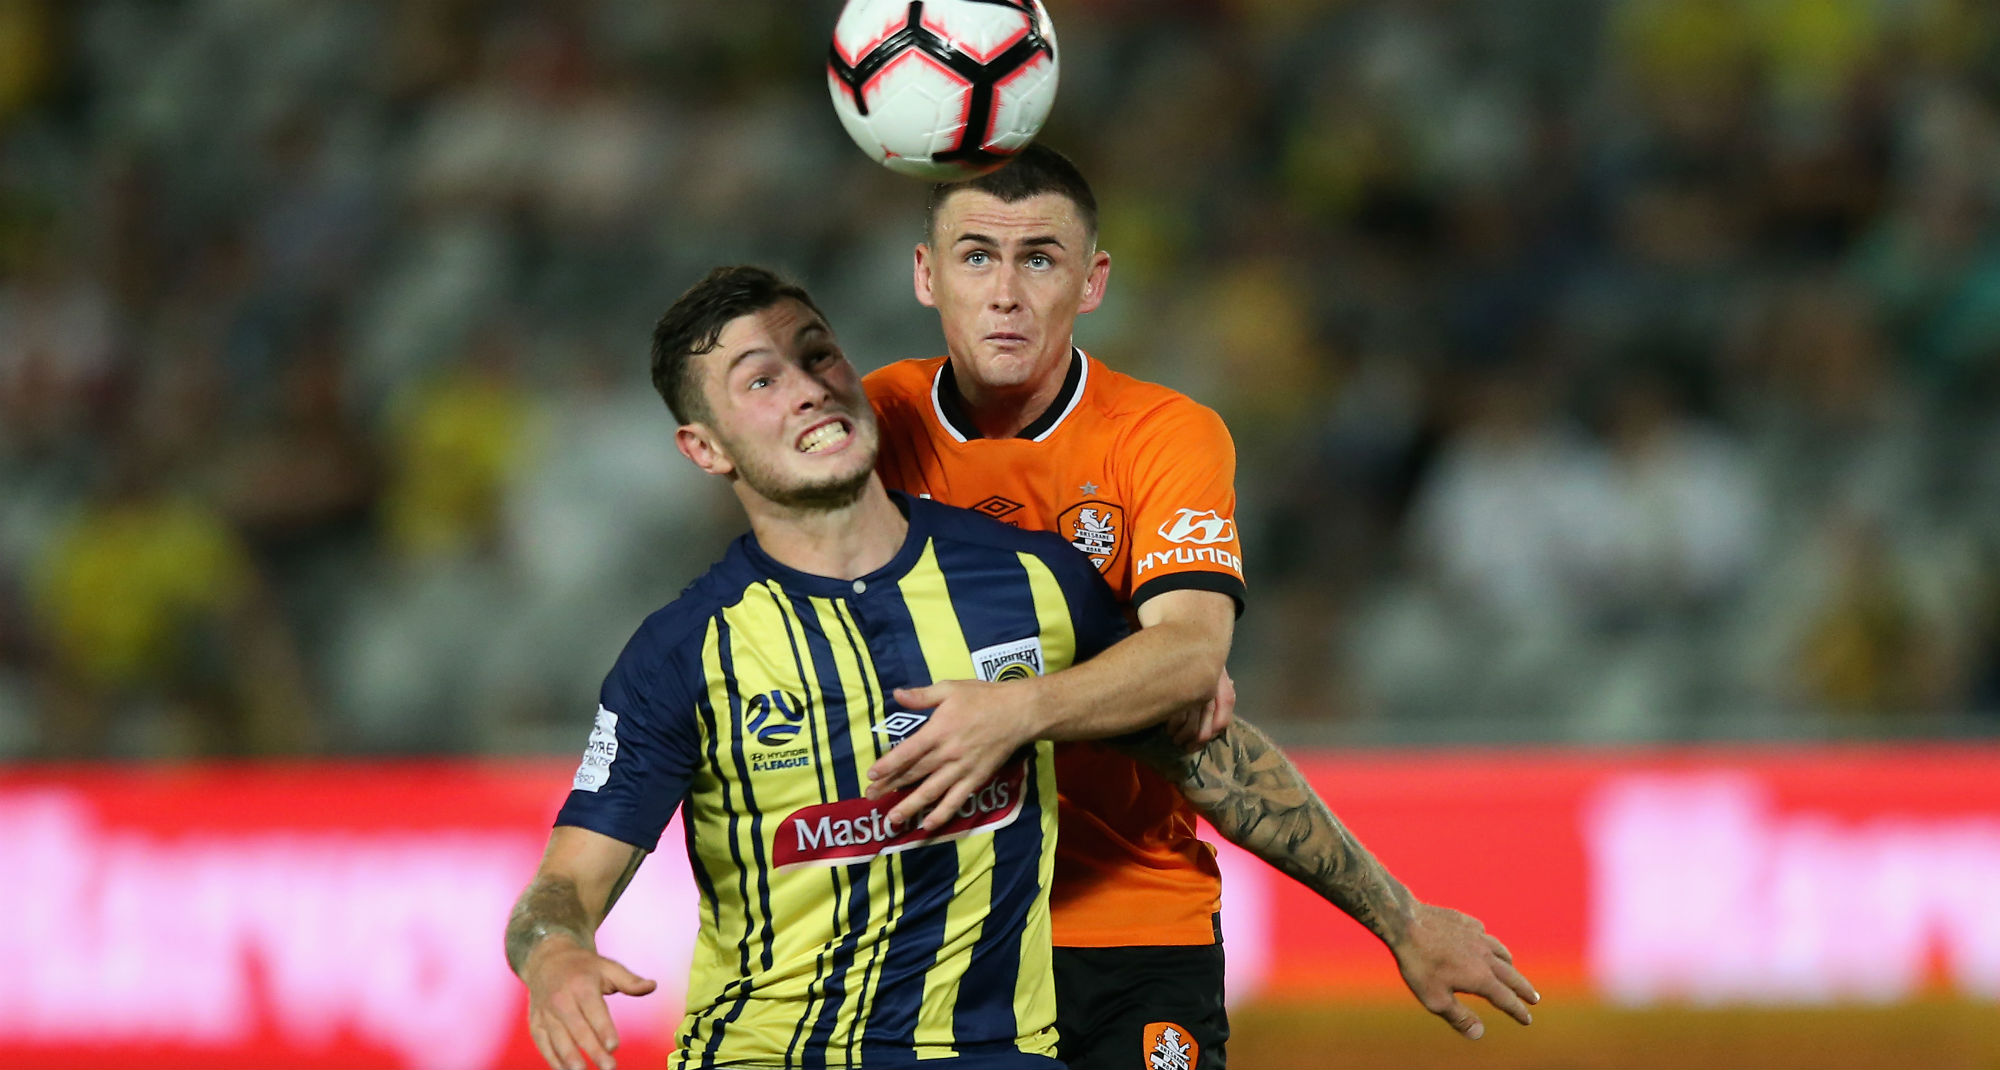 Mariners 2018/19 Player of the Year Aiden O'Neill will be pulling on a Brisbane Roar jersey in 2019/20.